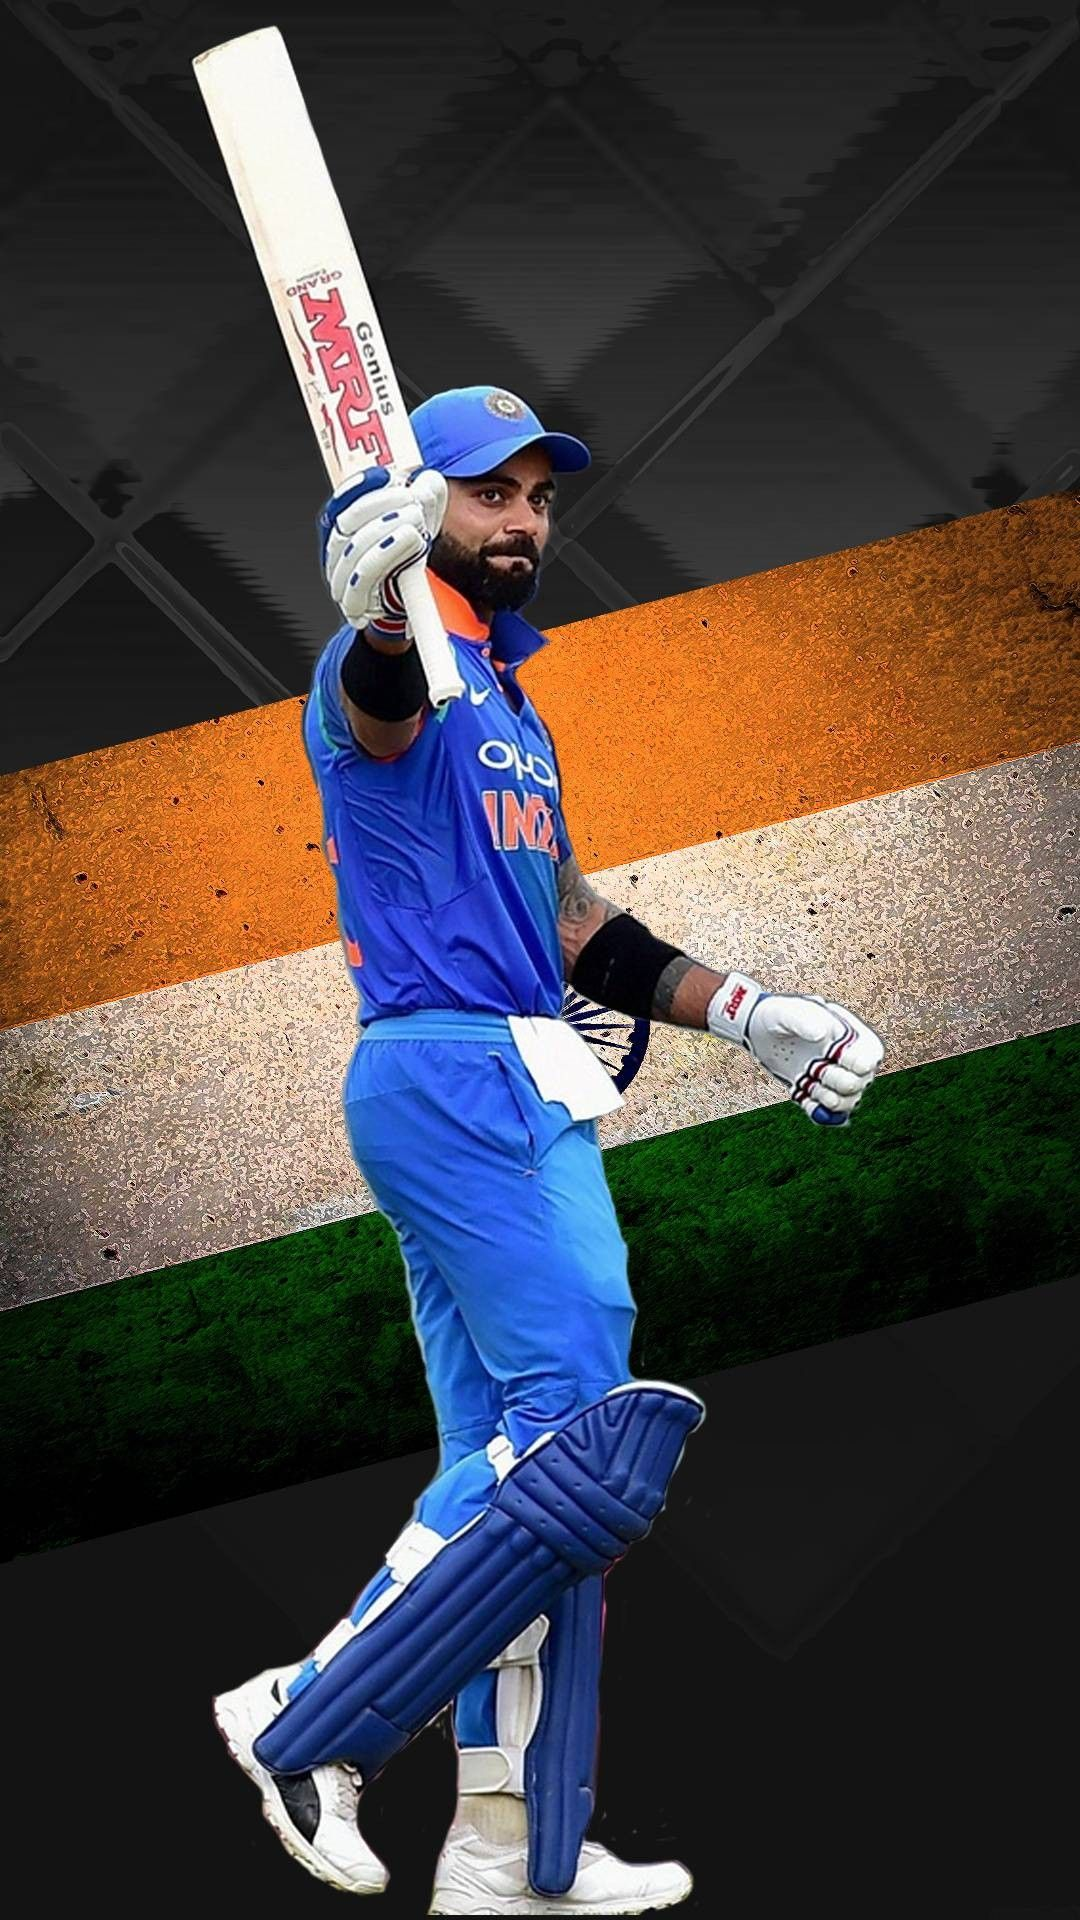 Pin by รɦαรɦαɳҡ on Ꮙⅈℛᗅᝨ Kᝪℍℒⅈ Cricket wallpapers, Virat